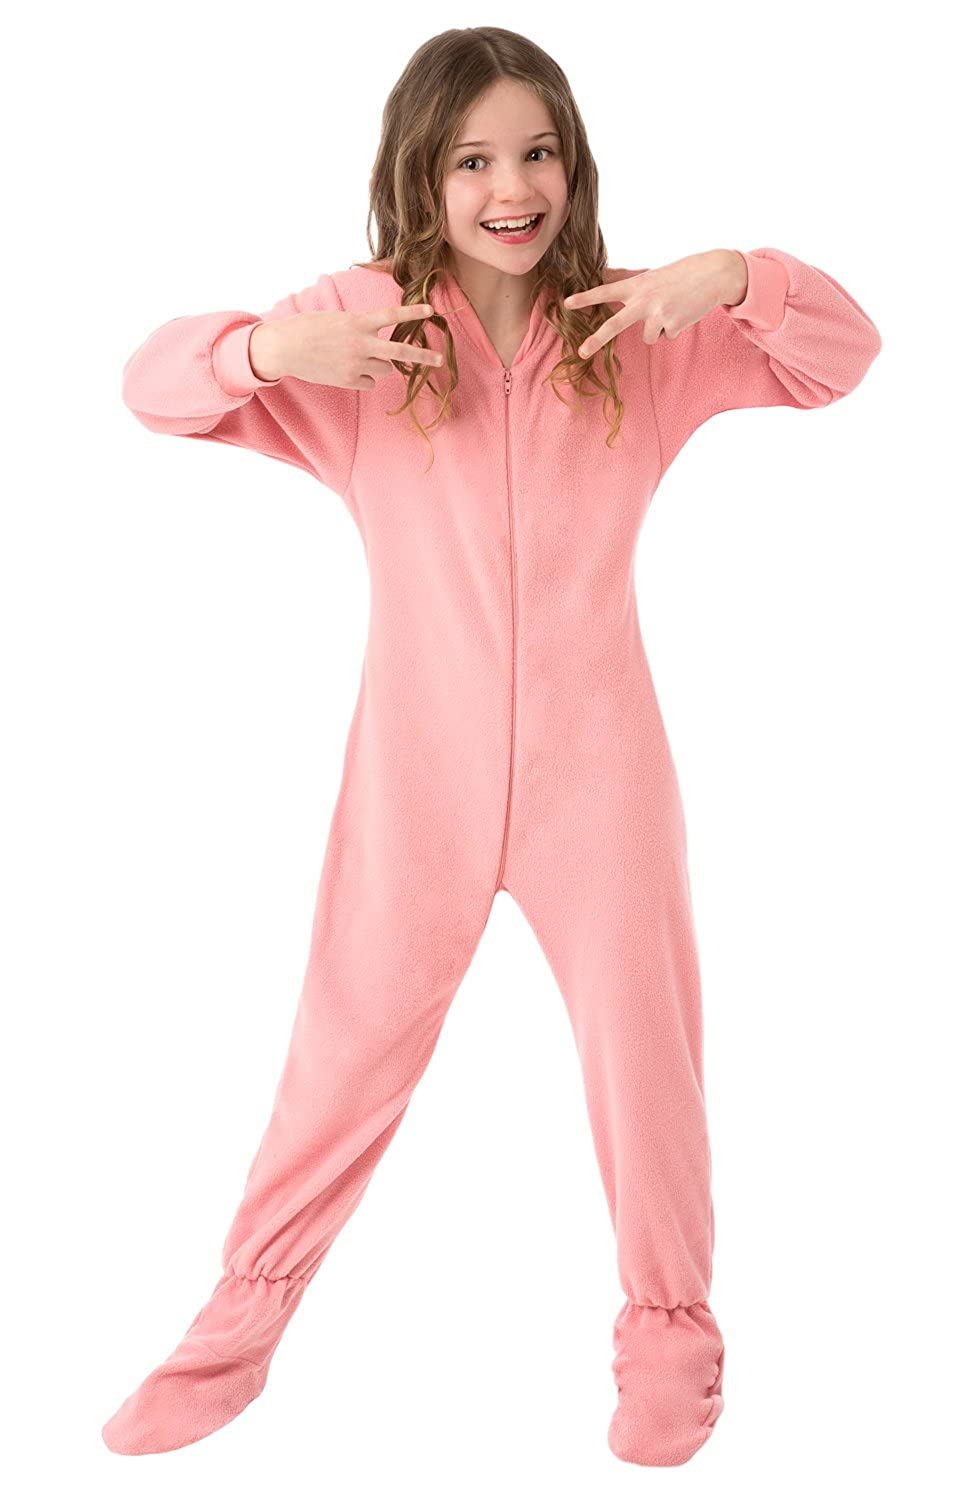 Buy Adult & Kids Animal Onesie Pajamas, inflatable costumes from tanzaniasafarisorvicos.ga These Cute Onesie Are Perfect for Pajamas or A Costume Party! Next-day Shipping To the US And Worldwide.